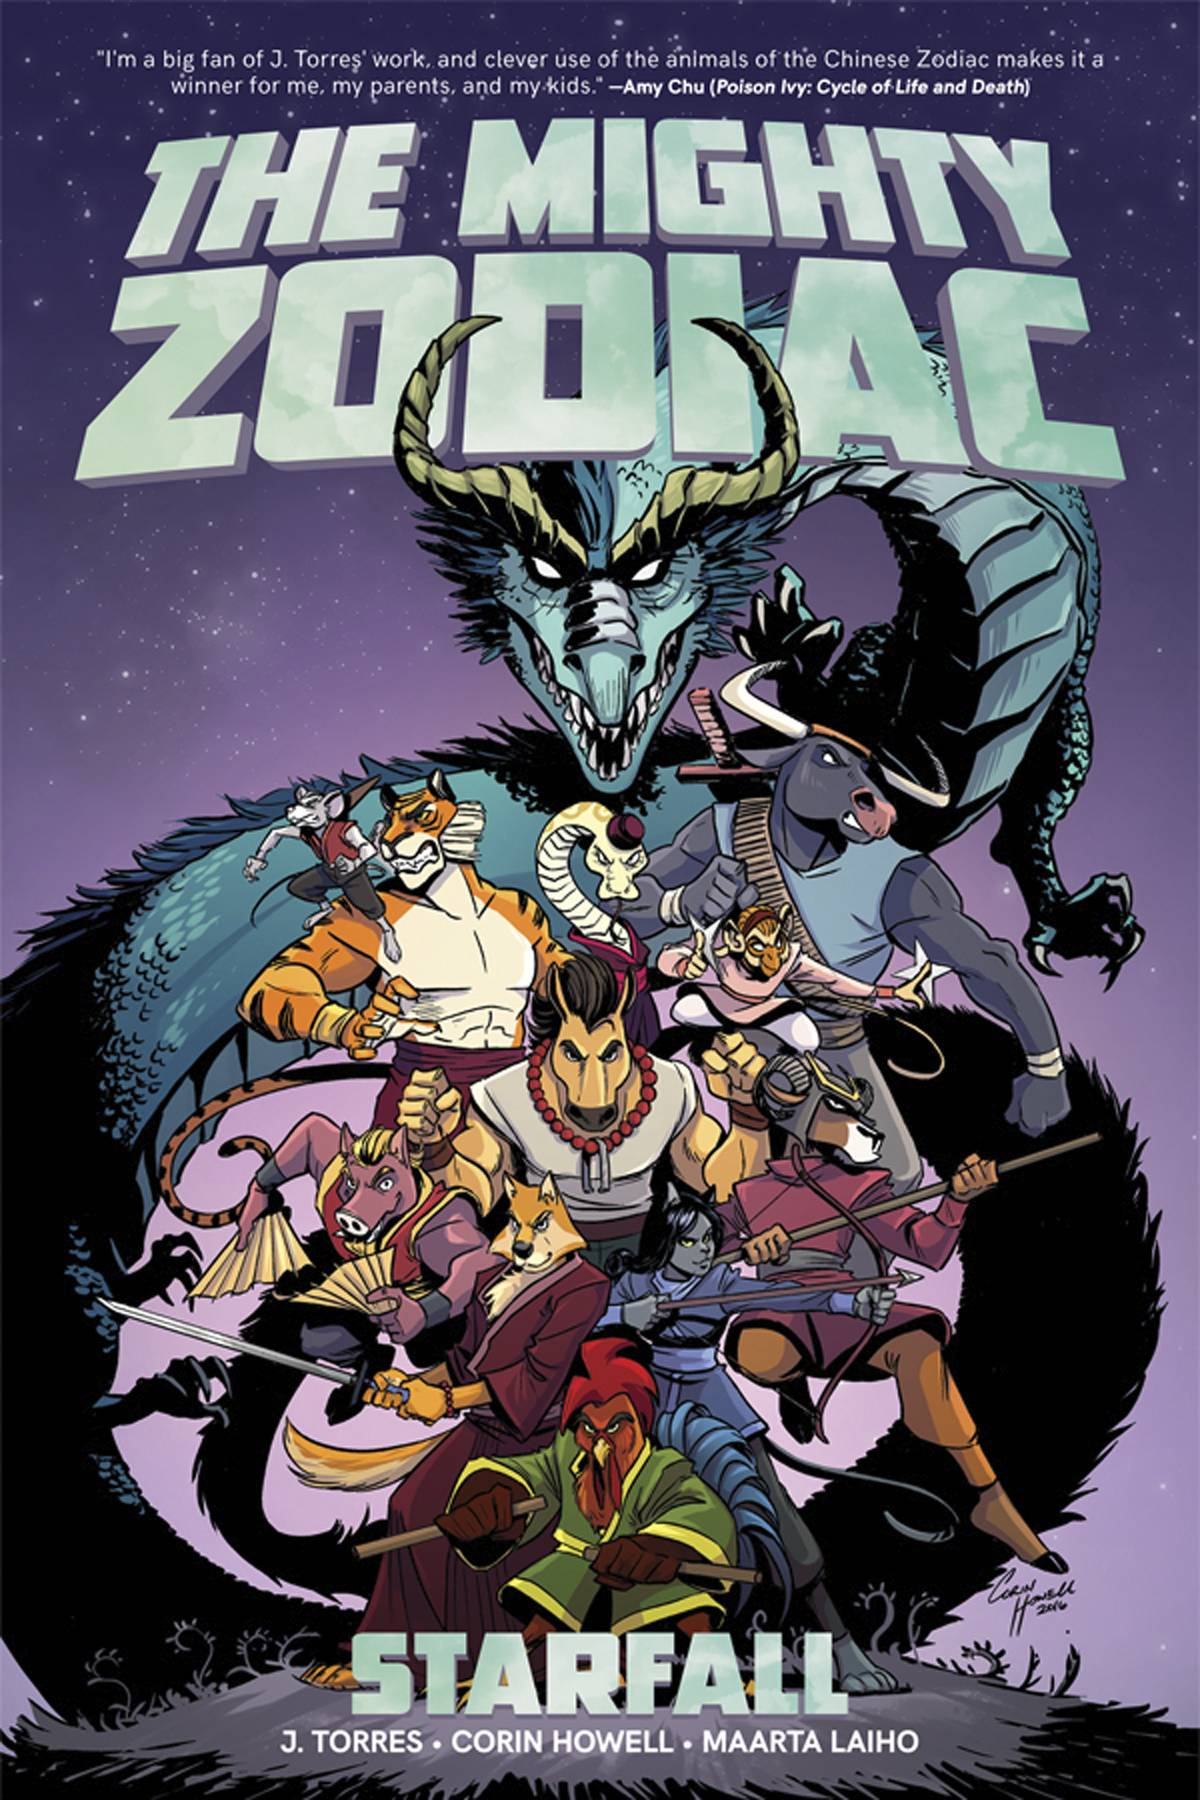 THE MIGHTY ZODIAC TP VOL 01